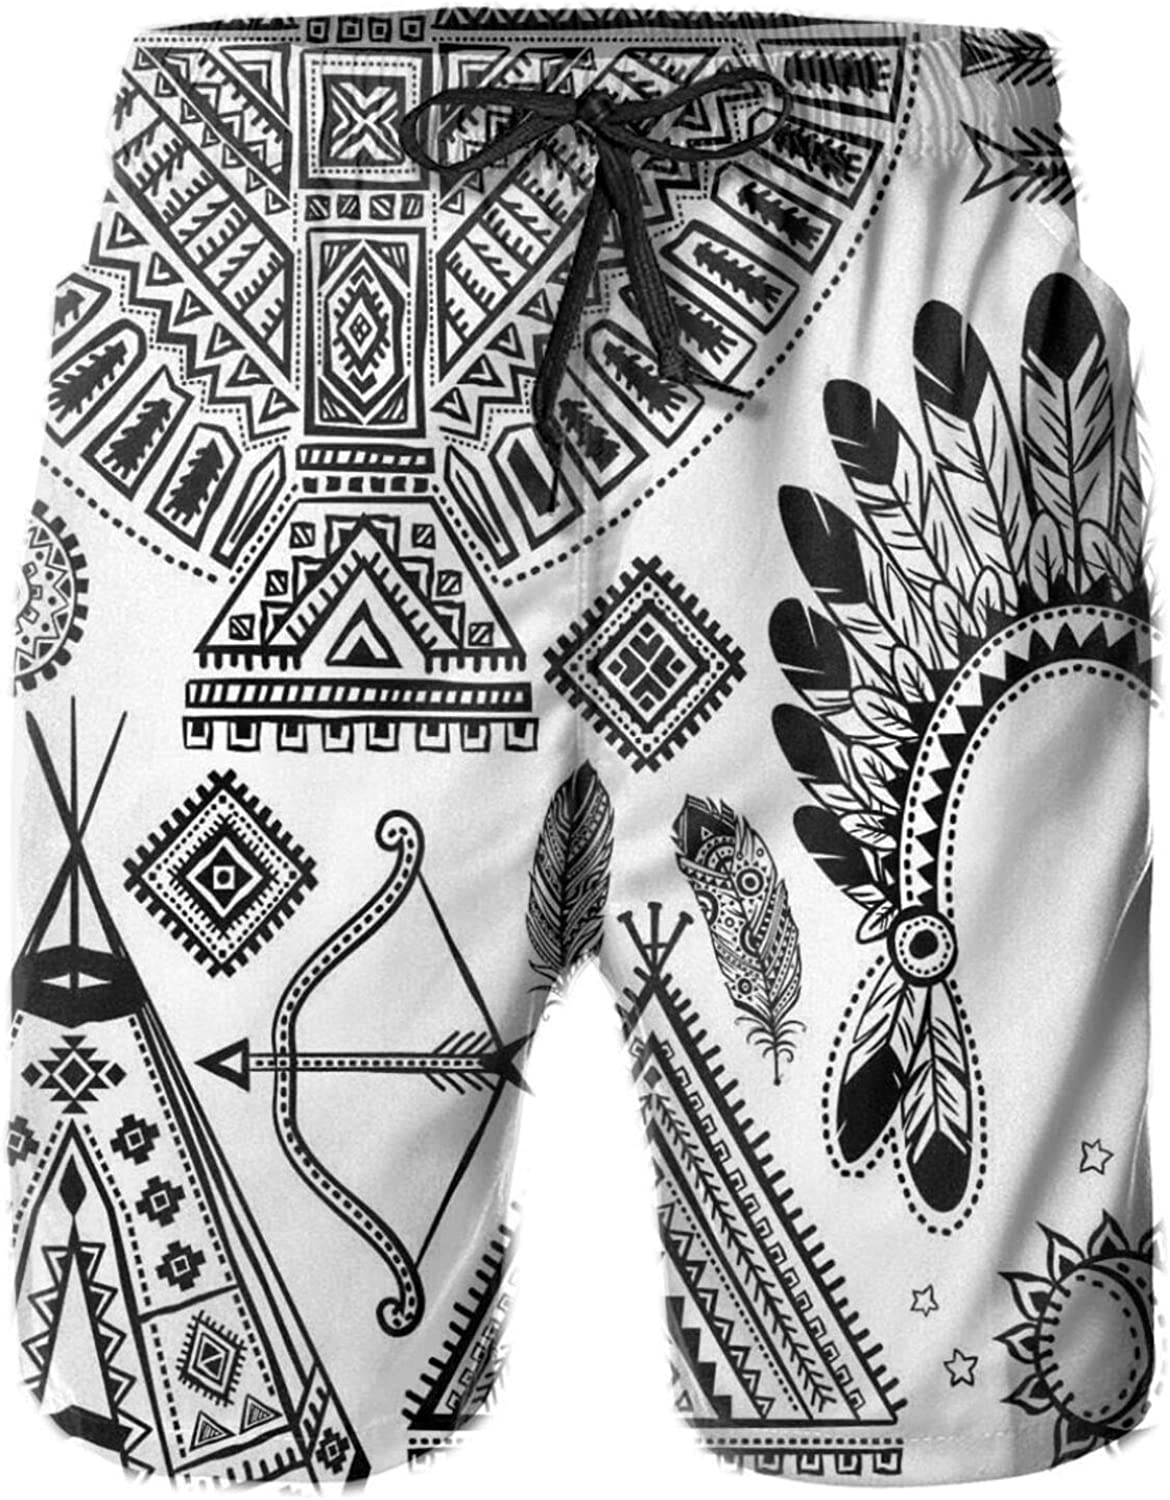 Native American Feather Head Band Ethnic Teepee Tent Bow and Arrow Art Print Drawstring Waist Beach Shorts for Men Swim Trucks Board Shorts with Mesh Lining,L